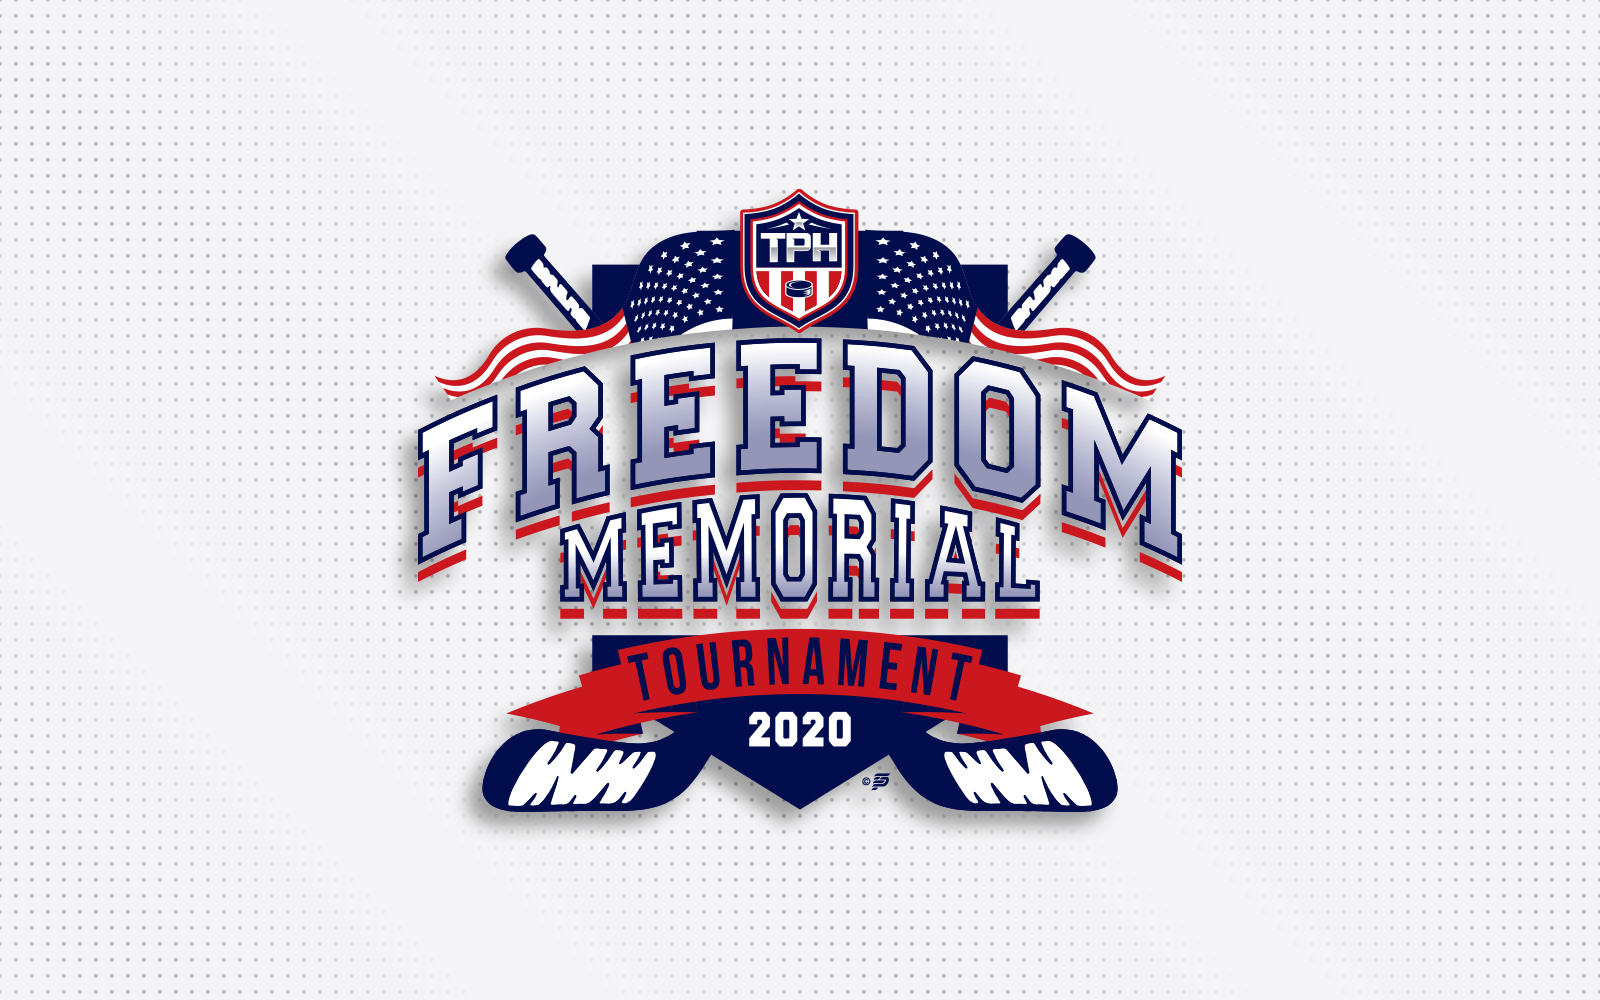 FREEDOM MEMORIAL TOURNAMENT